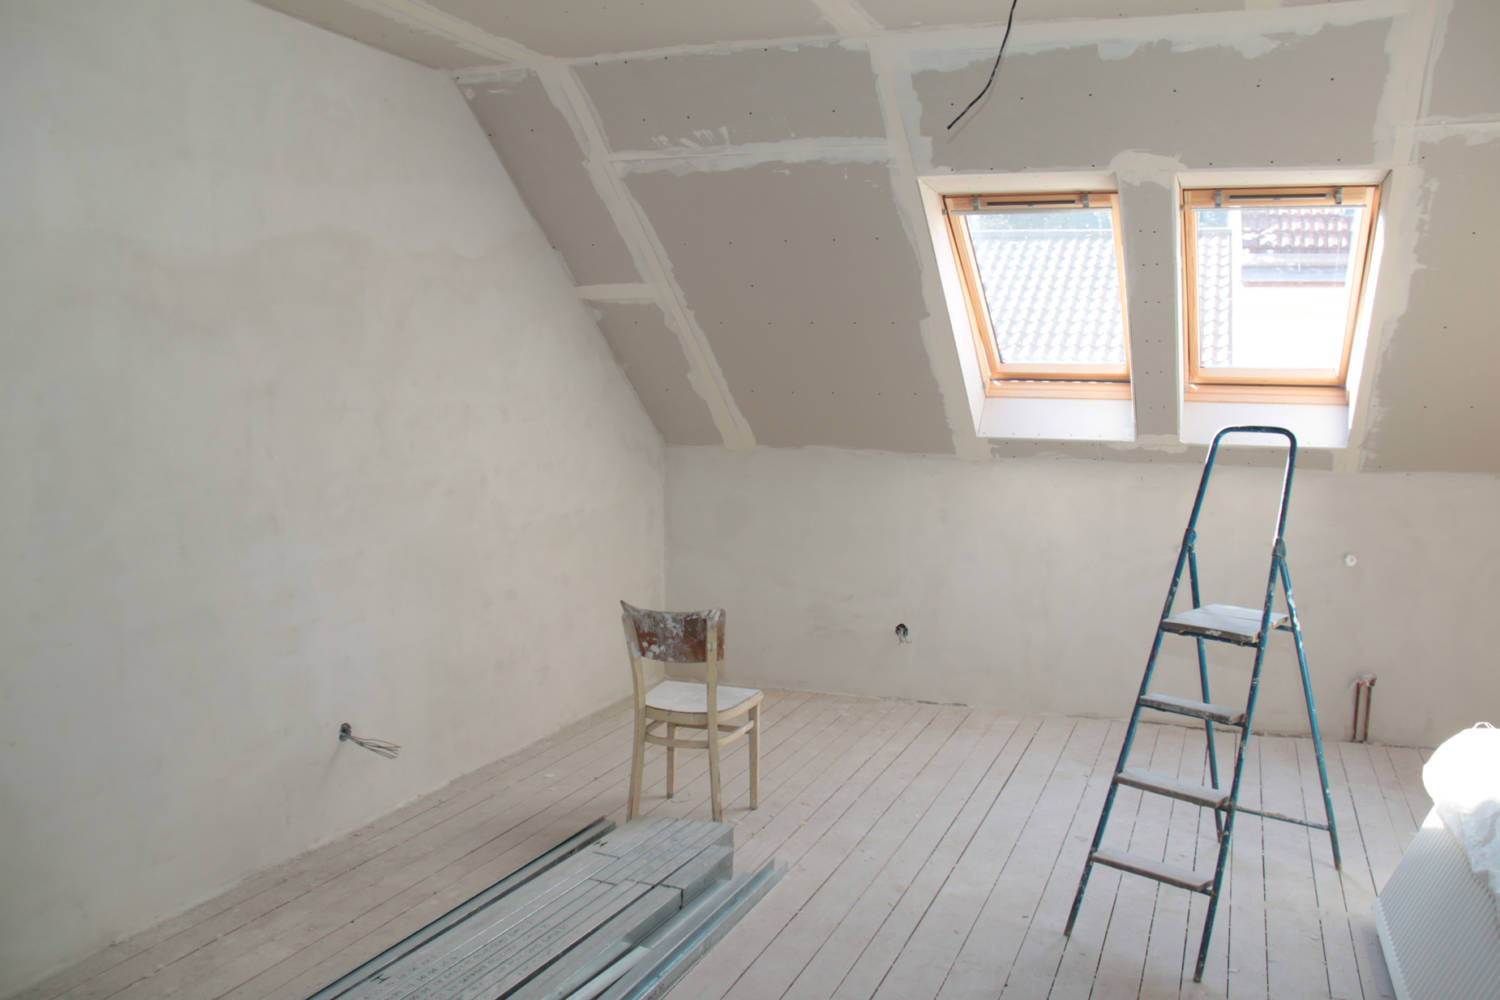 attic being remodeled